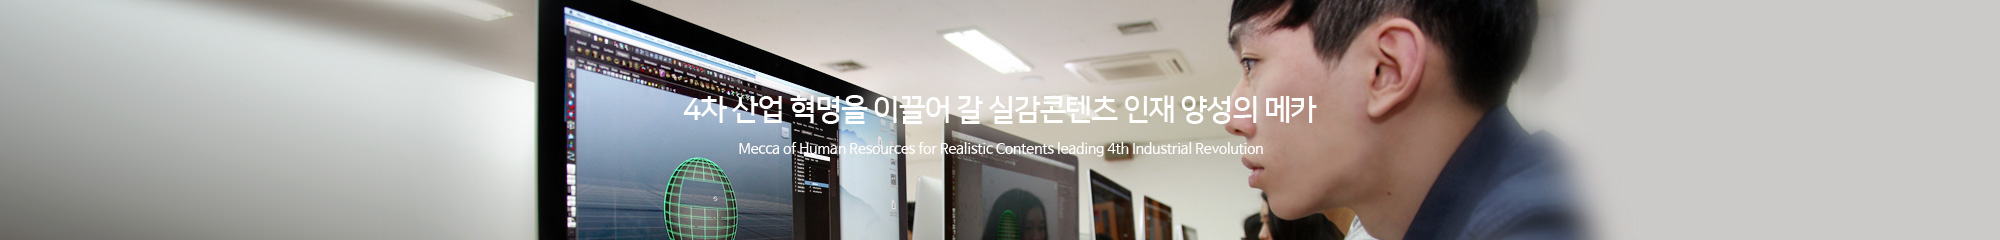 4차 산업 혁명을 이끌어 갈 실감콘텐츠 인재 양성의 메카 Mecca of Human Resources for Realistic Contents leading 4th Industrial Revolution